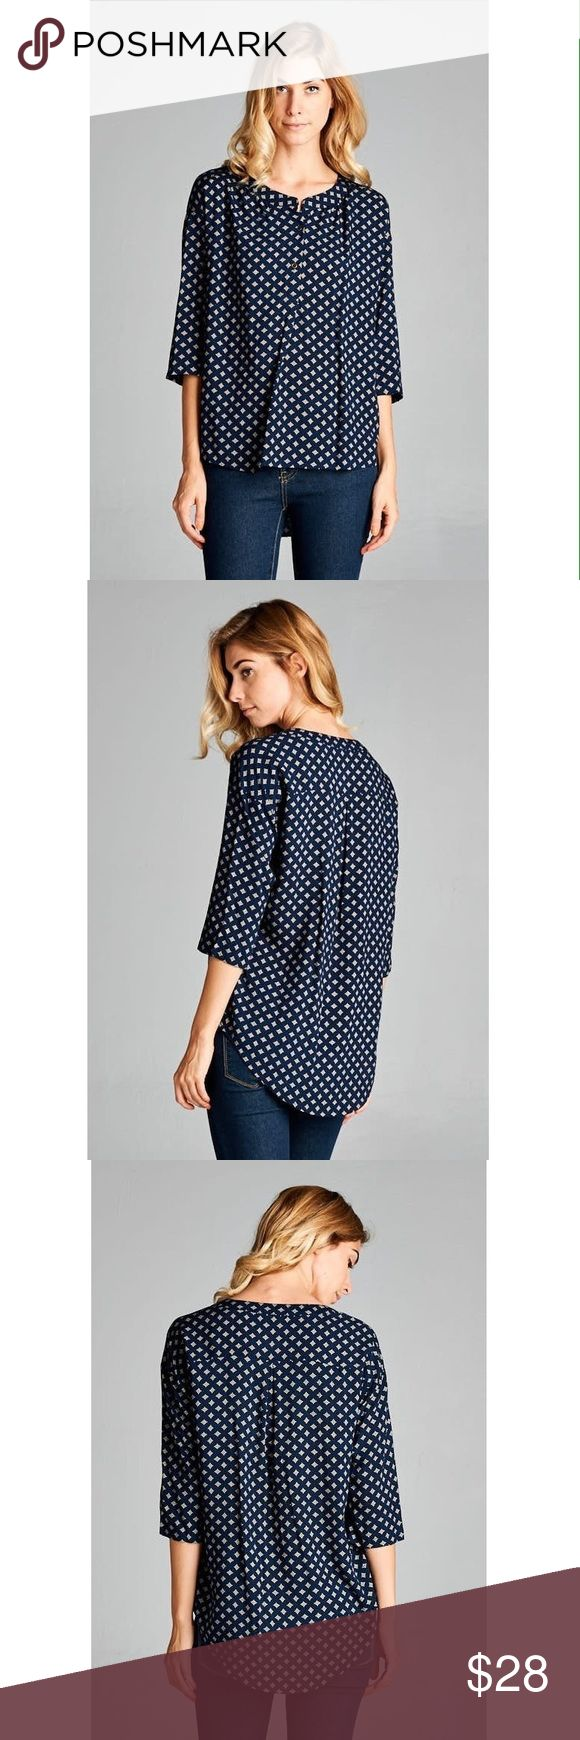 Navy Blouse Tops 90